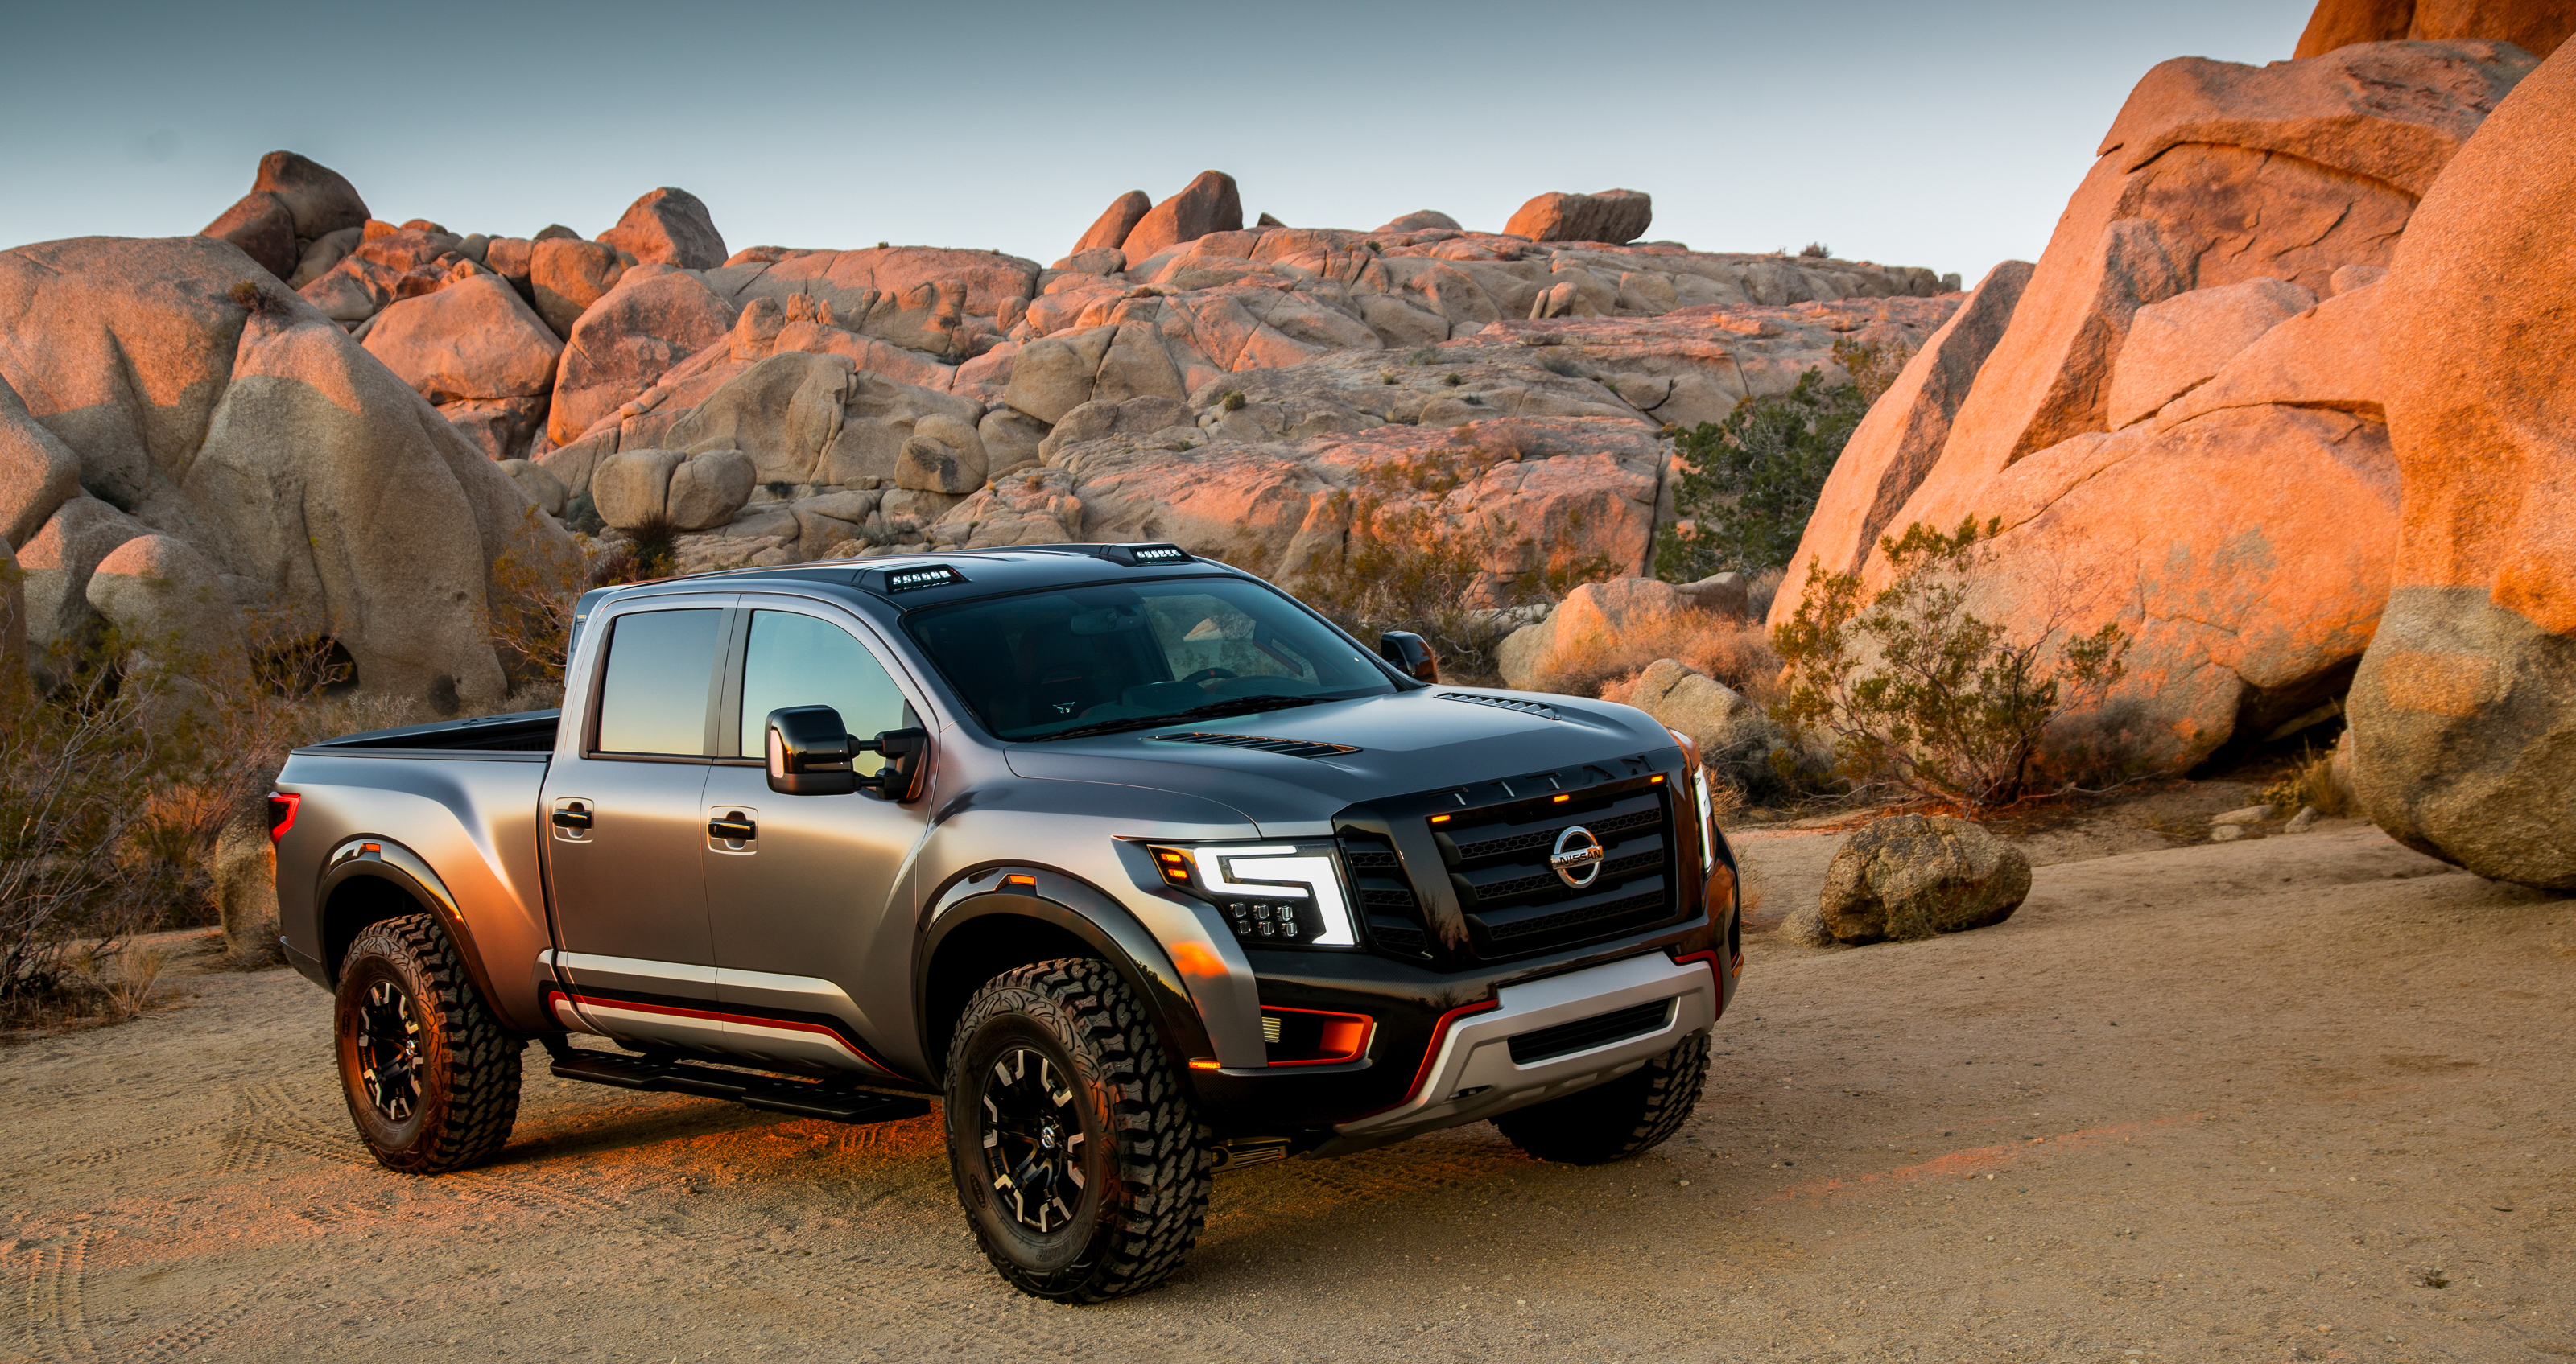 naias 2016 nissan titan warrior ready for off road attack. Black Bedroom Furniture Sets. Home Design Ideas